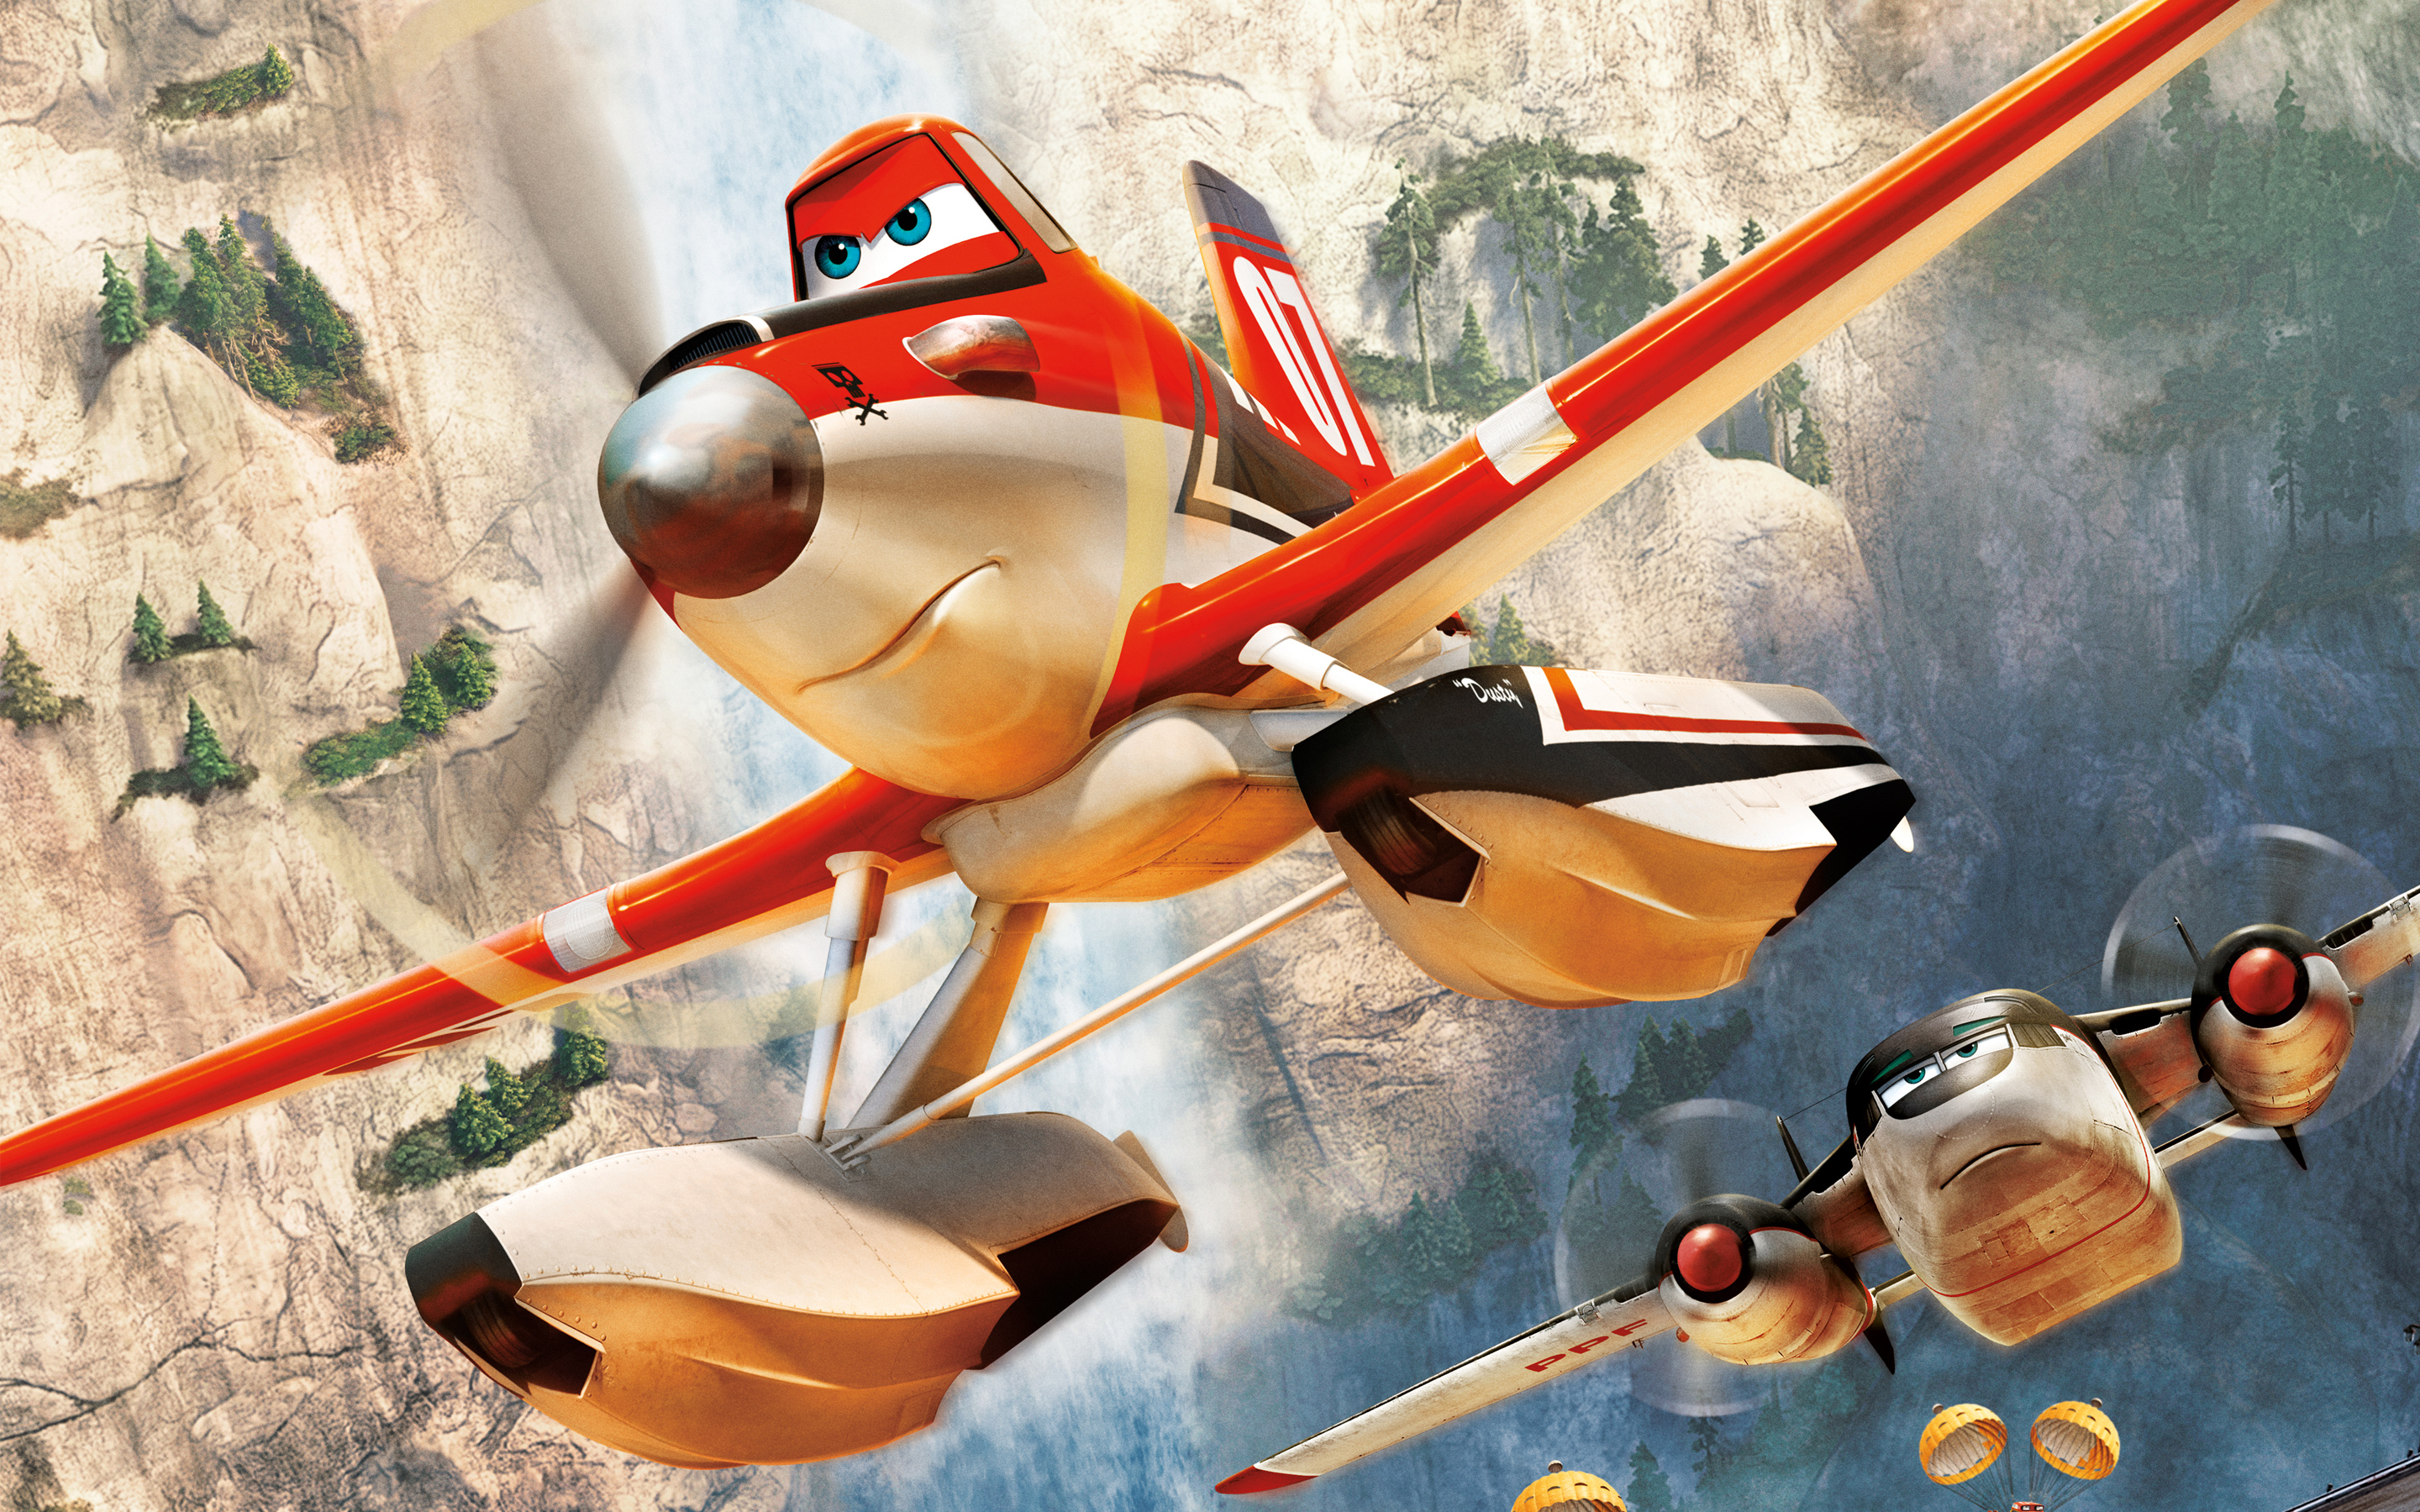 Planes Fire & Rescue 2014 403.76 Kb